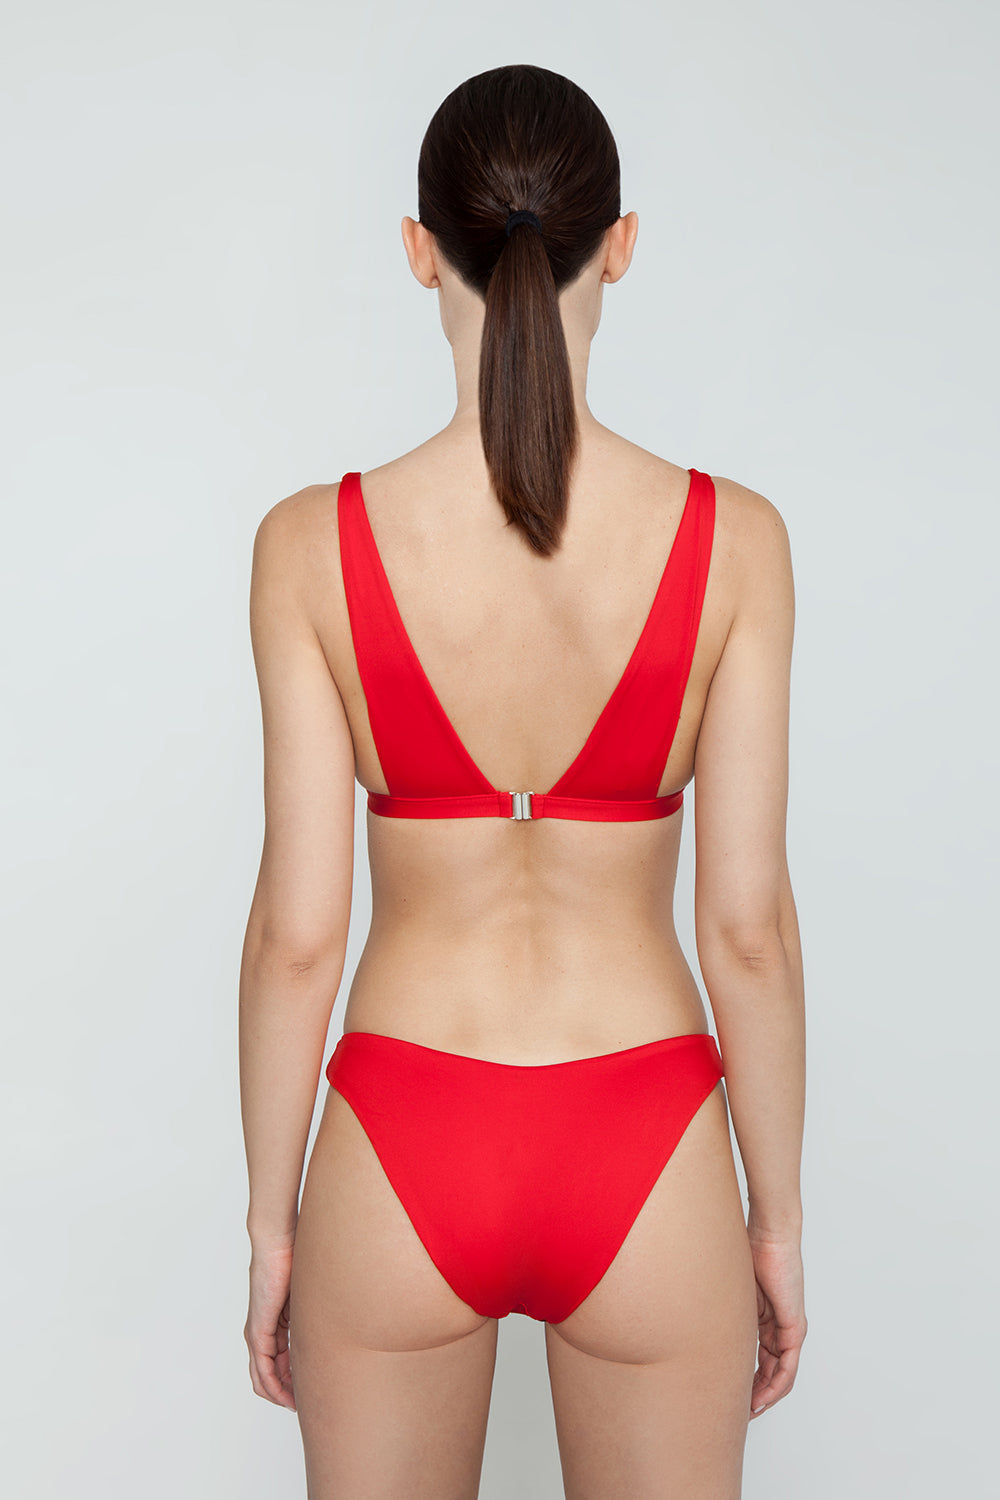 MONICA HANSEN BEACHWEAR Babe Watch Long Triangle Bikini Top - Red Bikini Top |  Red| Monica Hansen Babe Watch Long Triangle Bikini Top - Red. Features:  Small nickel colored metal clasp in black Double fabric on the inside instead of lining Italian fabric 85% Nylon 15% Elastane Manufactured in Italy Hand wash cold.  Dry Flat Back View